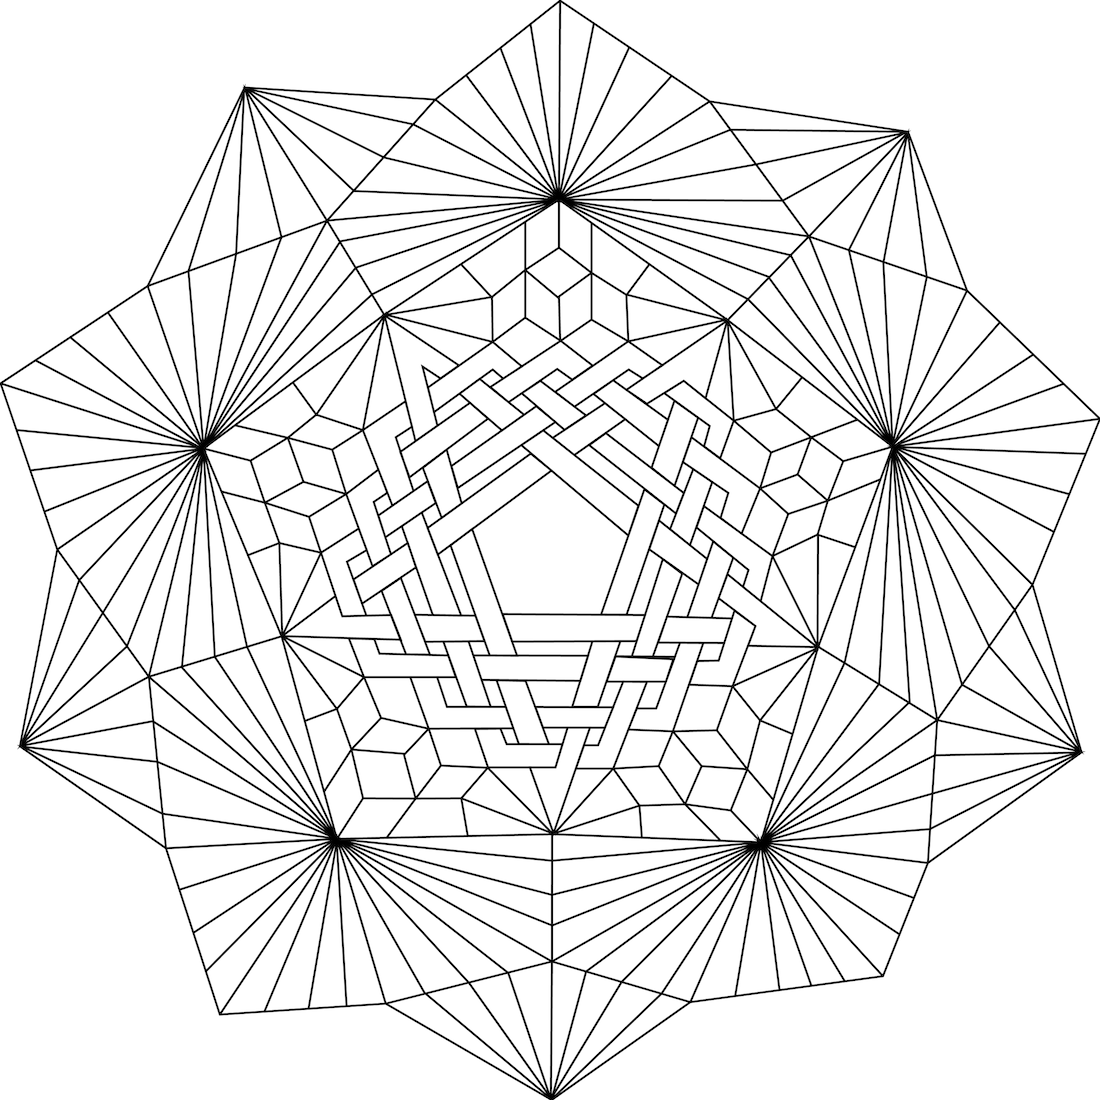 Geometric Coloring Pages Pdf Free Printable : Geometric mandala coloring page az pages